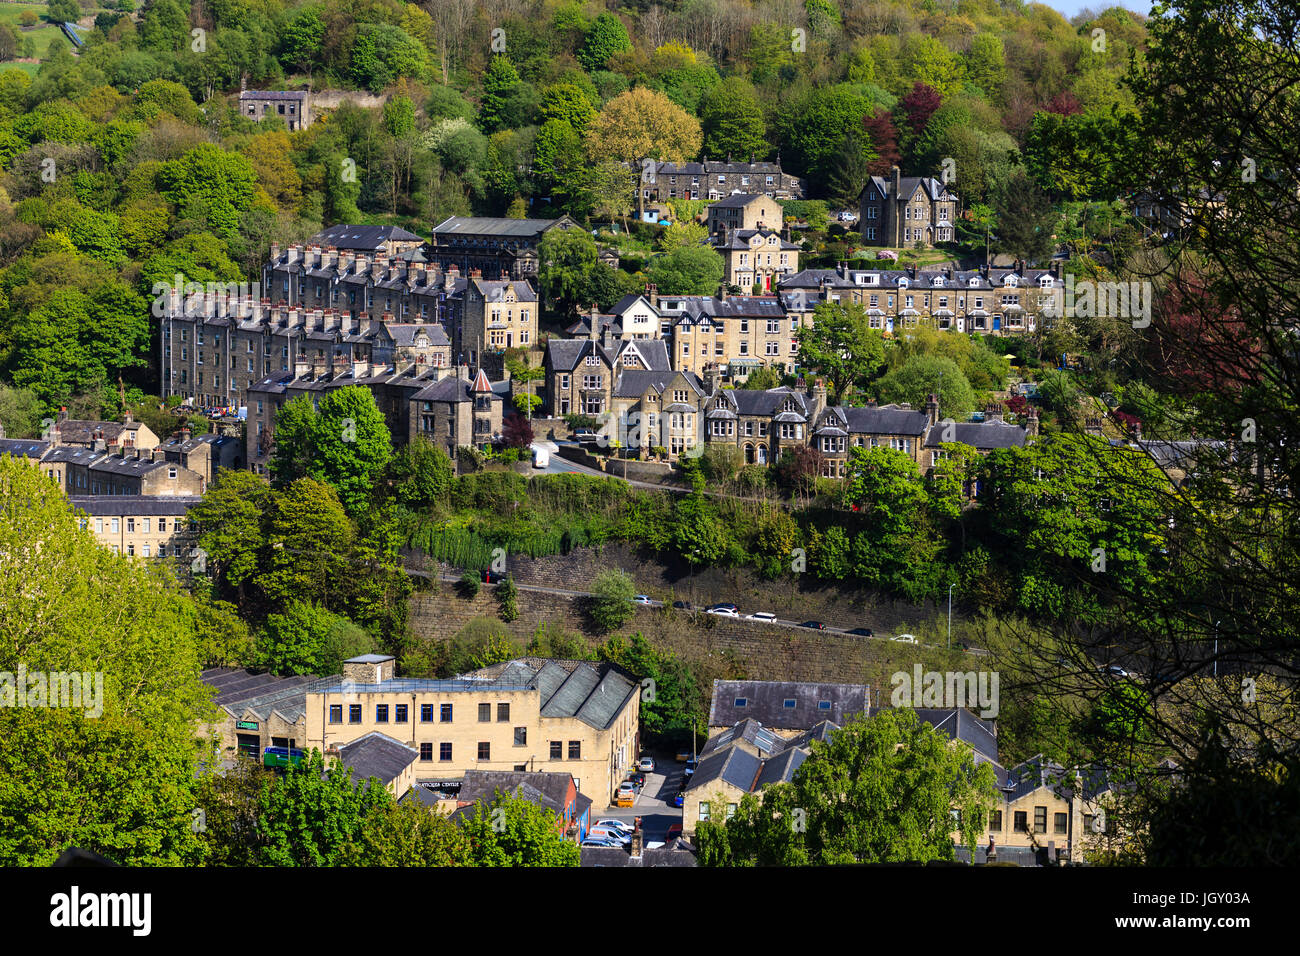 The steep sides of the Calder Valley in Hebden Bridge is dotted with terraced Victorian housing. - Stock Image